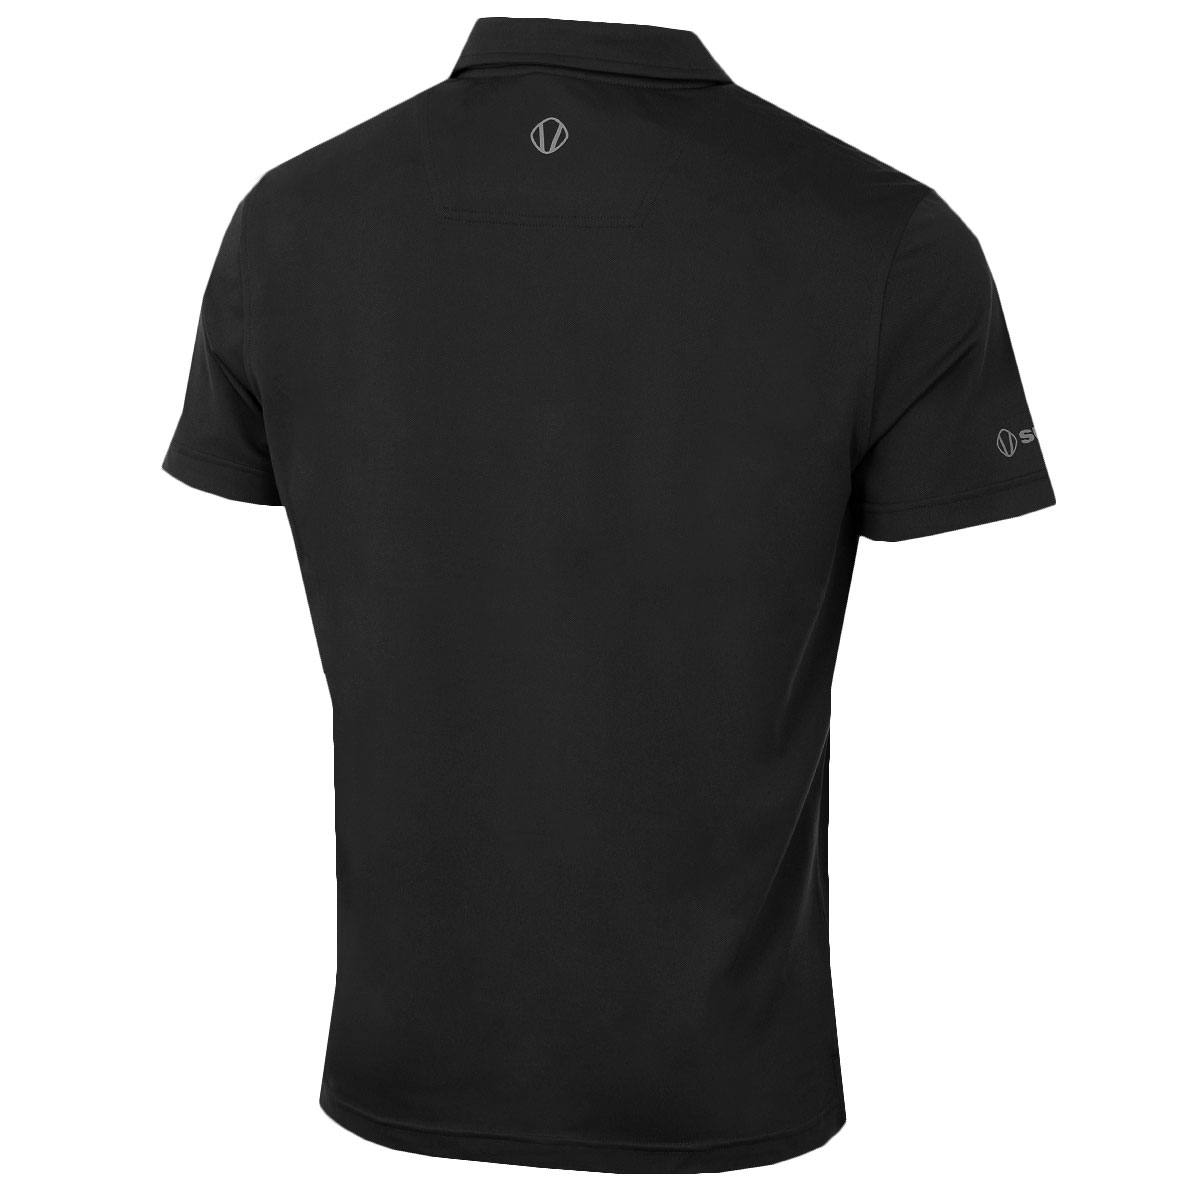 Sunice-Mens-Golf-Rouen-SS-Core-Stretch-Moisture-Wicking-Polo-Shirt-74-OFF-RRP thumbnail 3